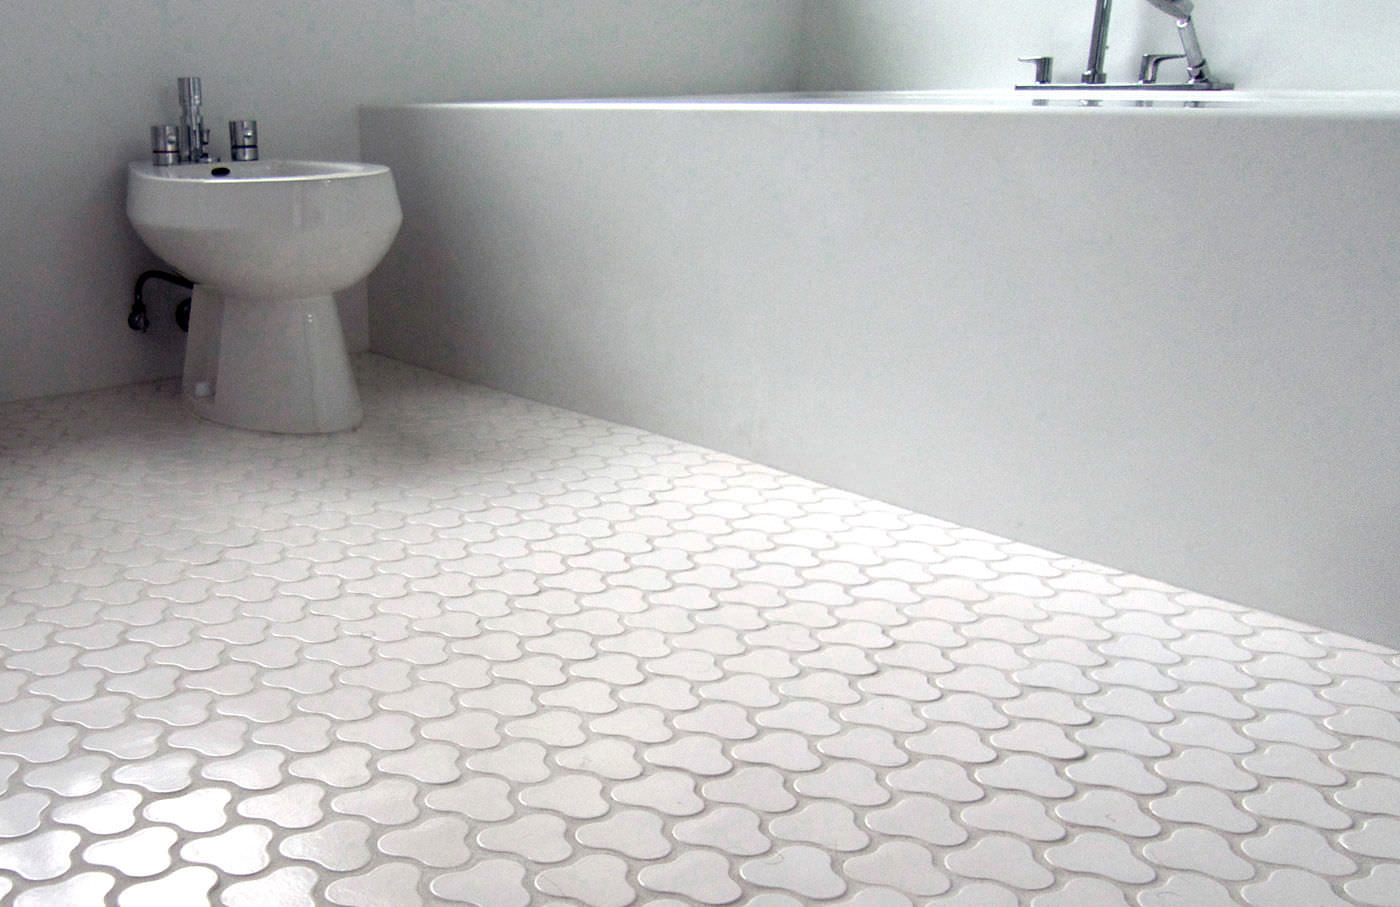 Tiles Bathroom Floor awesome floor tiles bathroom images - amazing design ideas